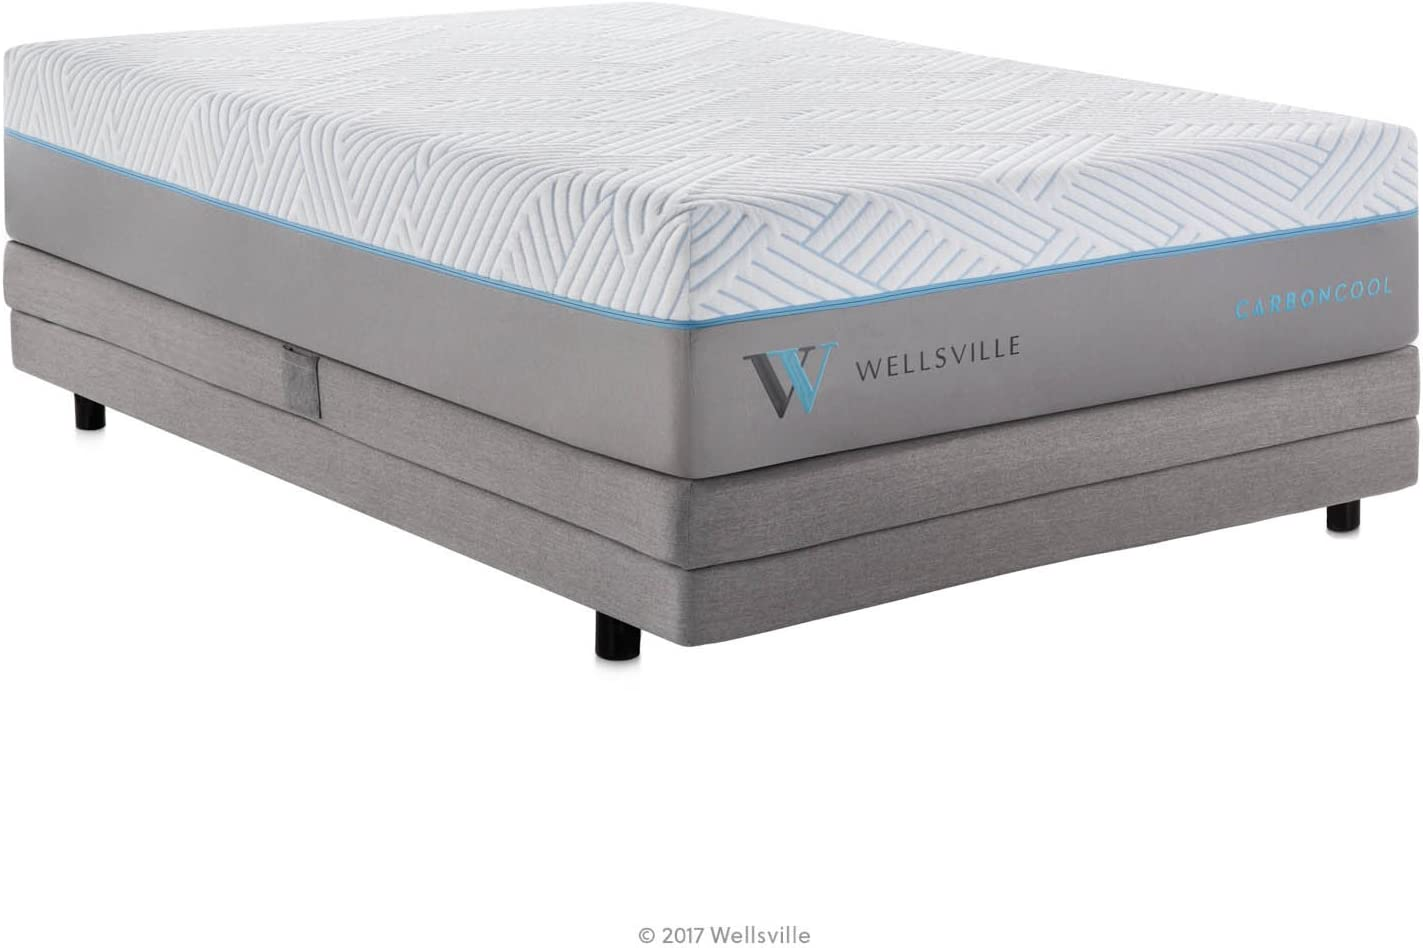 WELLSVILLE 14 Inch CarbonCool Memory Foam Premium Mattress, Twin